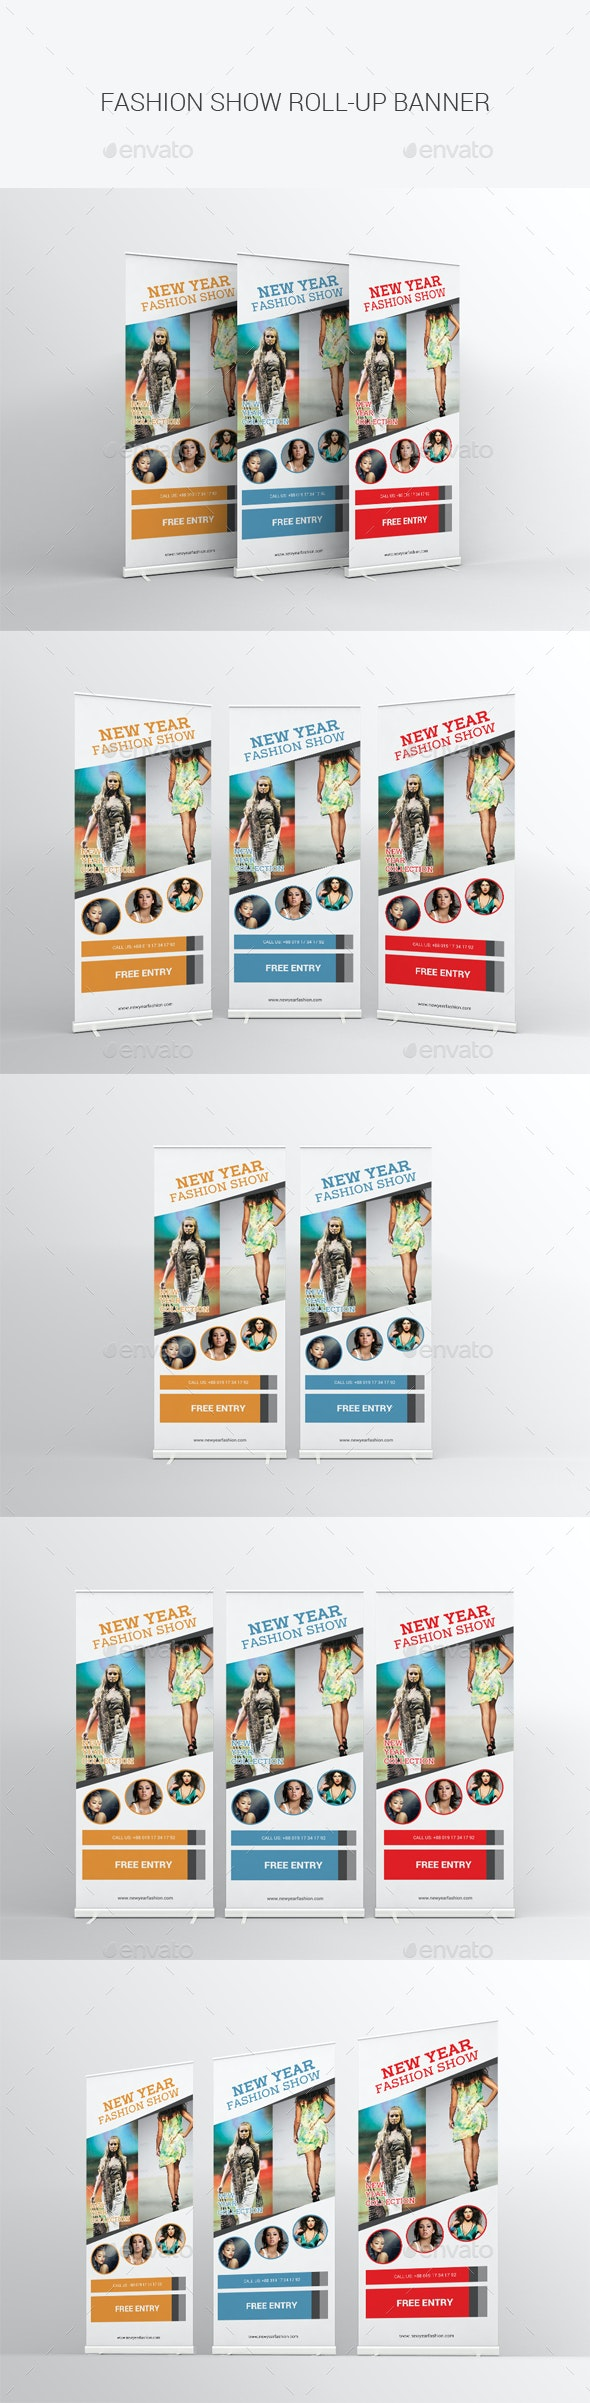 Fashion Show Roll-up Banner - Signage Print Templates